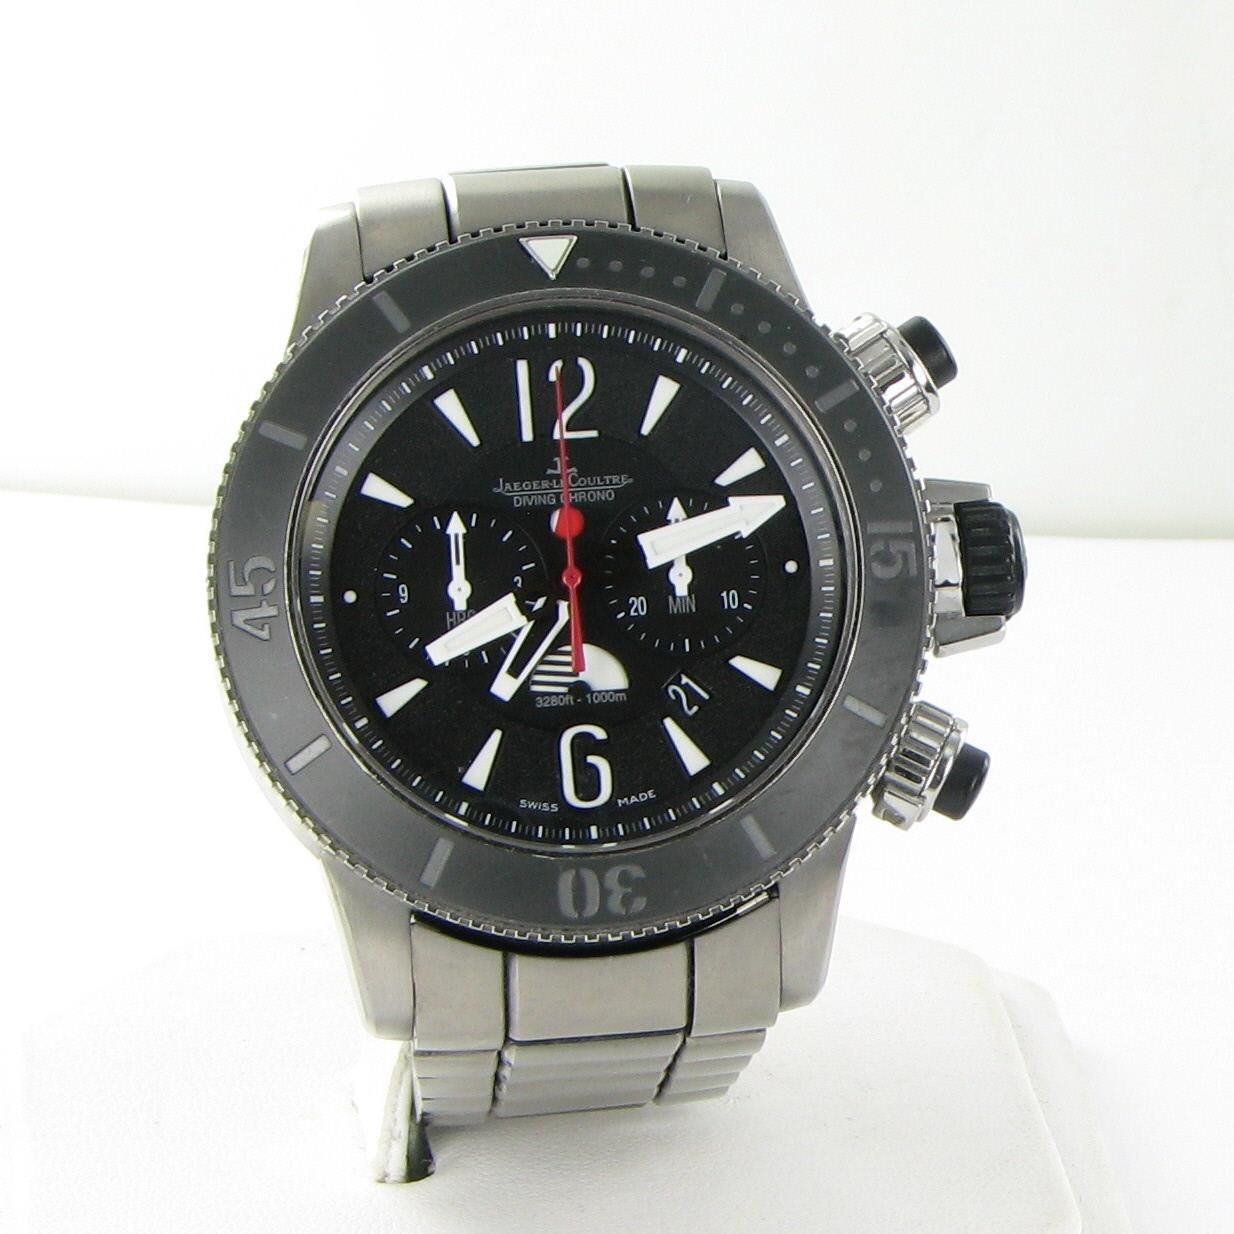 726488dfdcb Details about Jaeger Lecoultre Navy Seals Master Compressor Diving Chrono  GMT Watch Q178T170